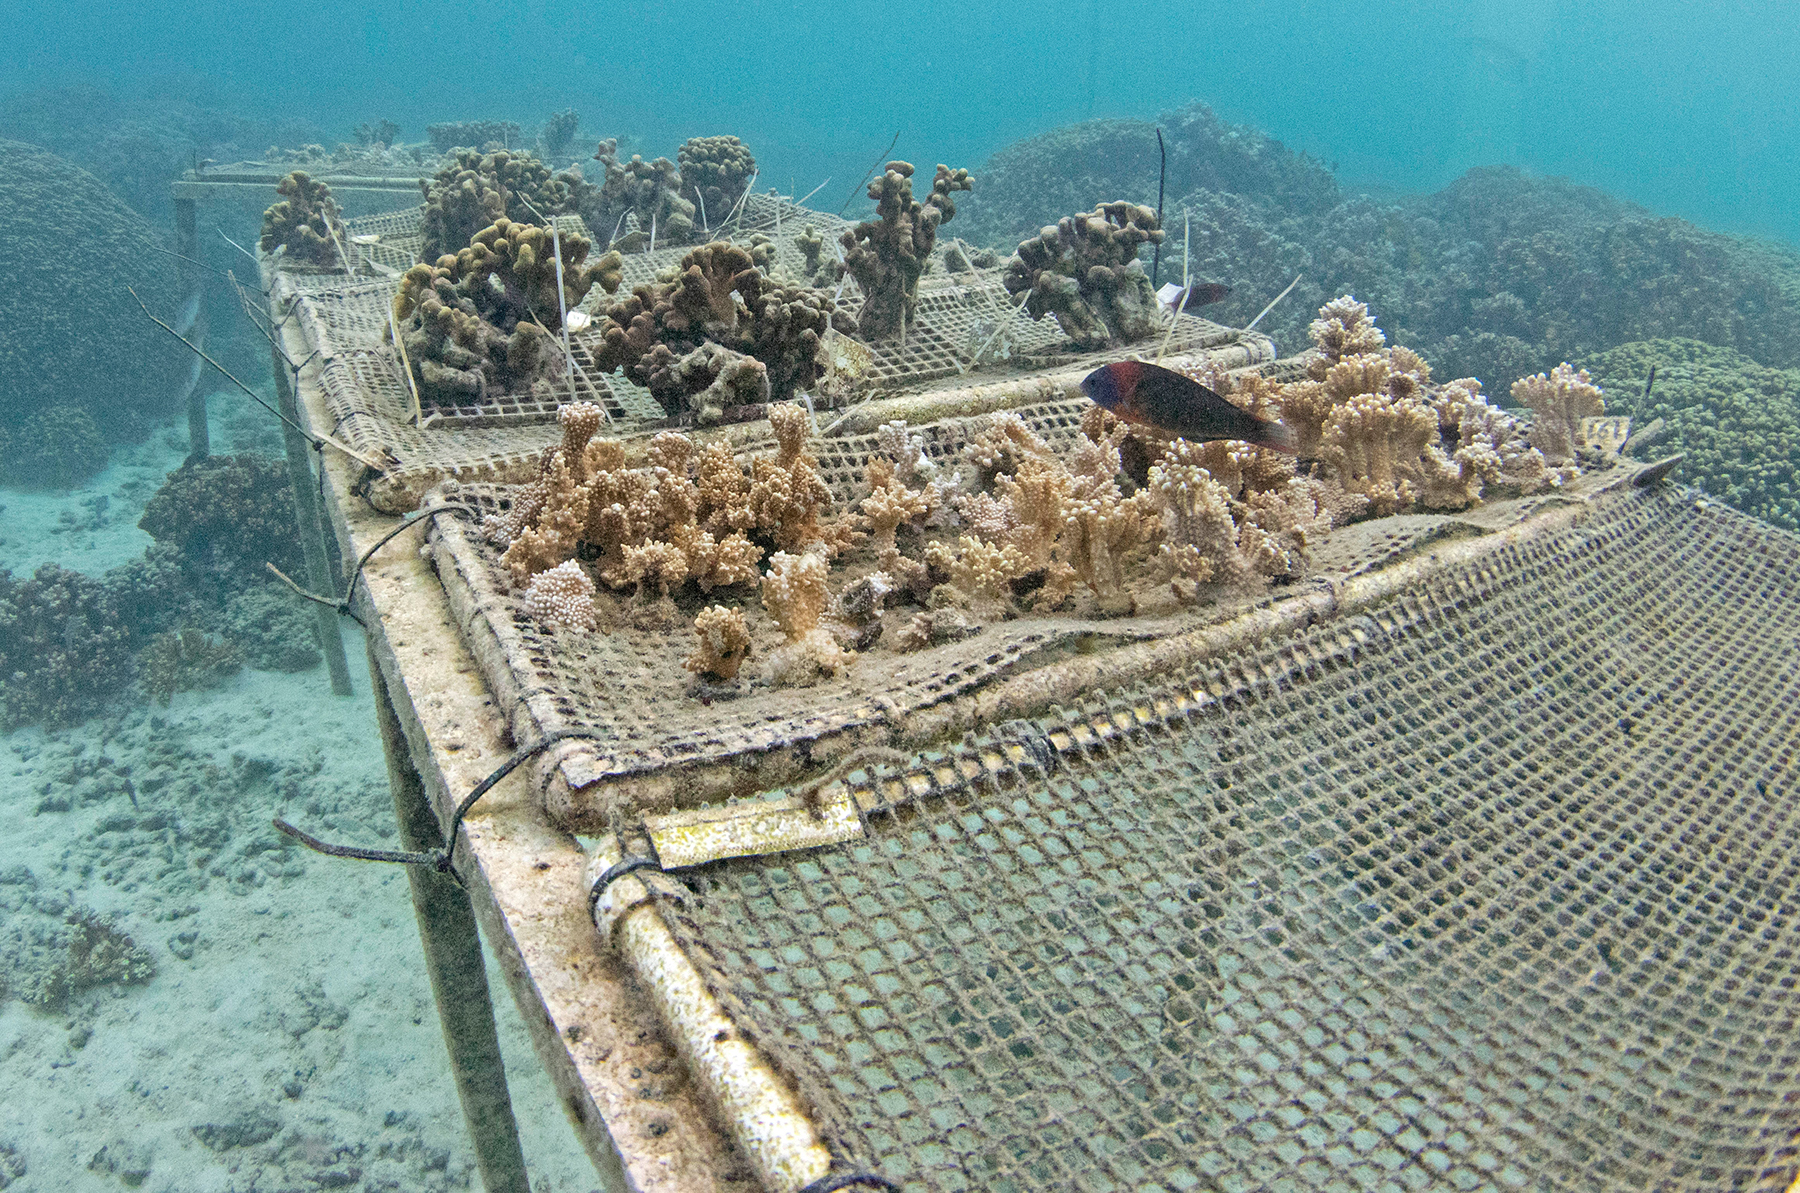 <p></noscript>Corals that survived a massive bleaching event in 2015 are being bred with the hope that new colonies can be established to resist climate change.</p>